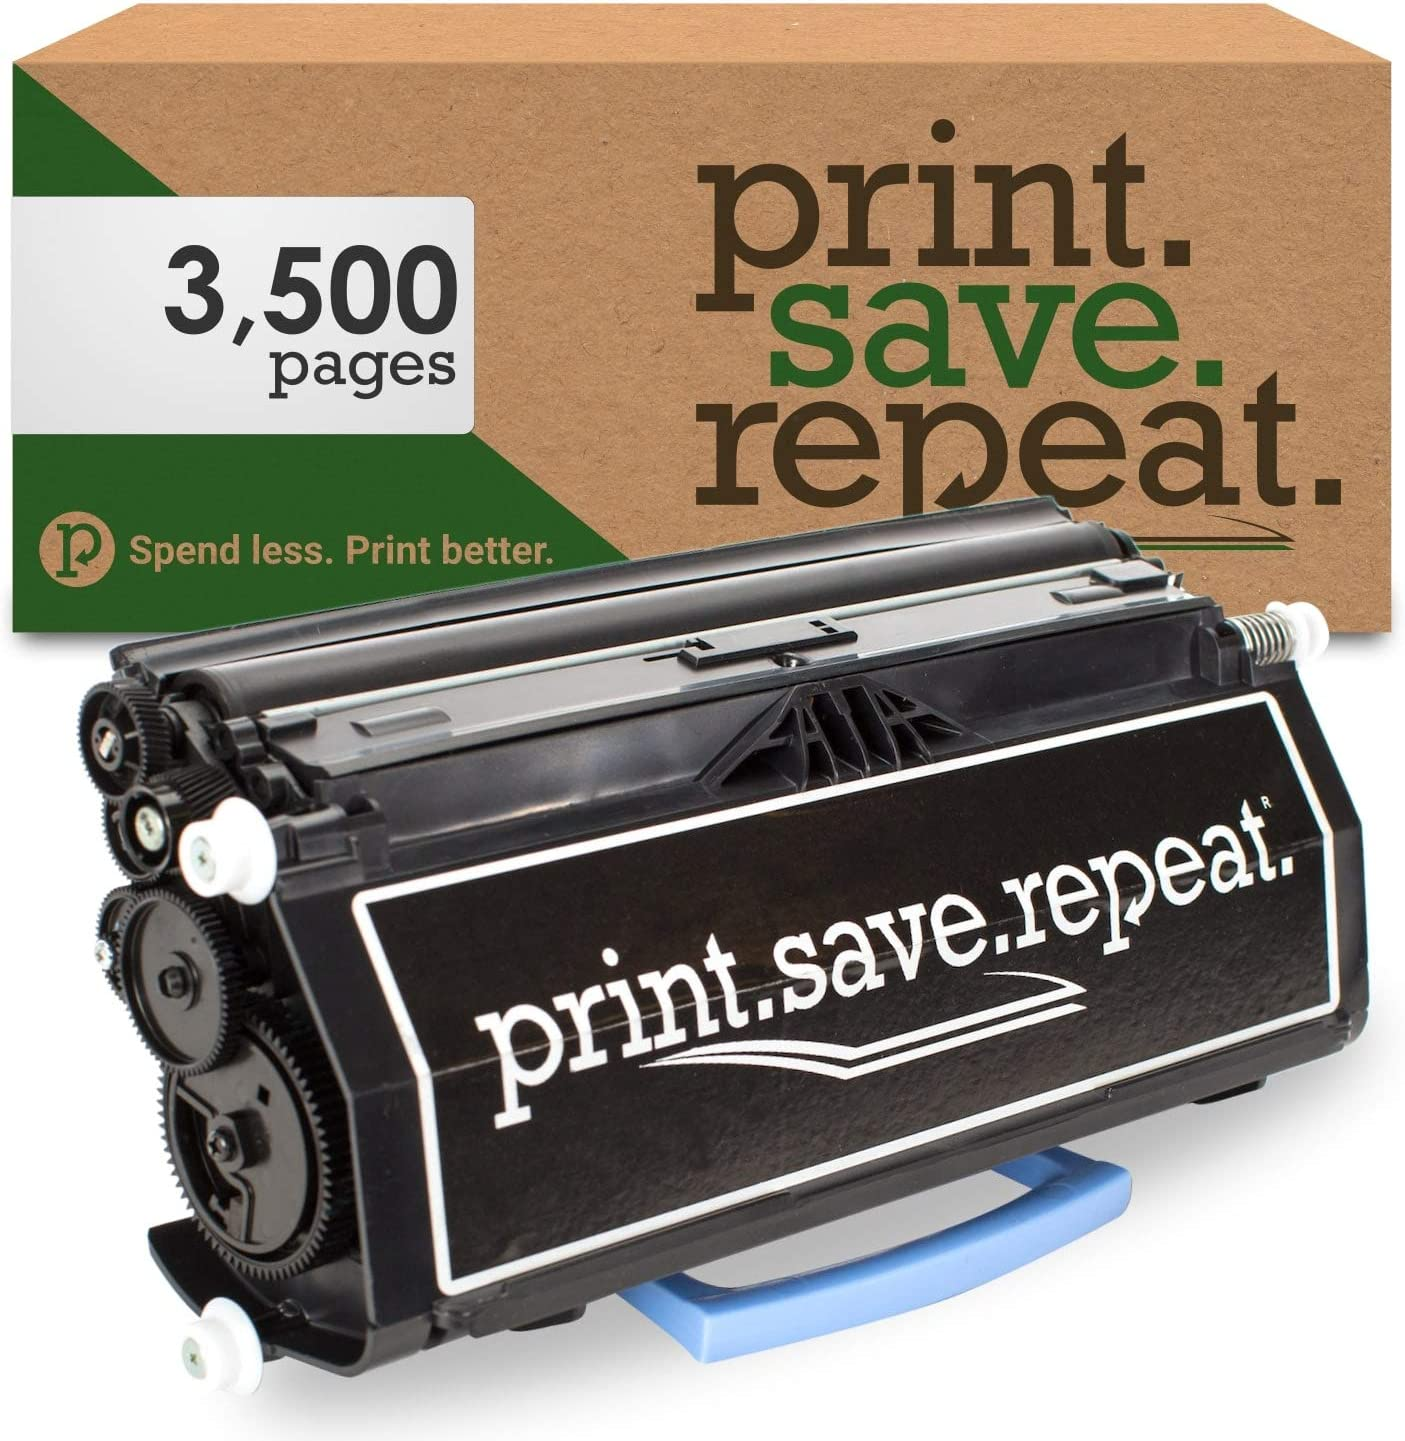 Print.Save.Repeat. Dell M797K Remanufactured Toner Cartridge for 2230 [3,500 Pages]